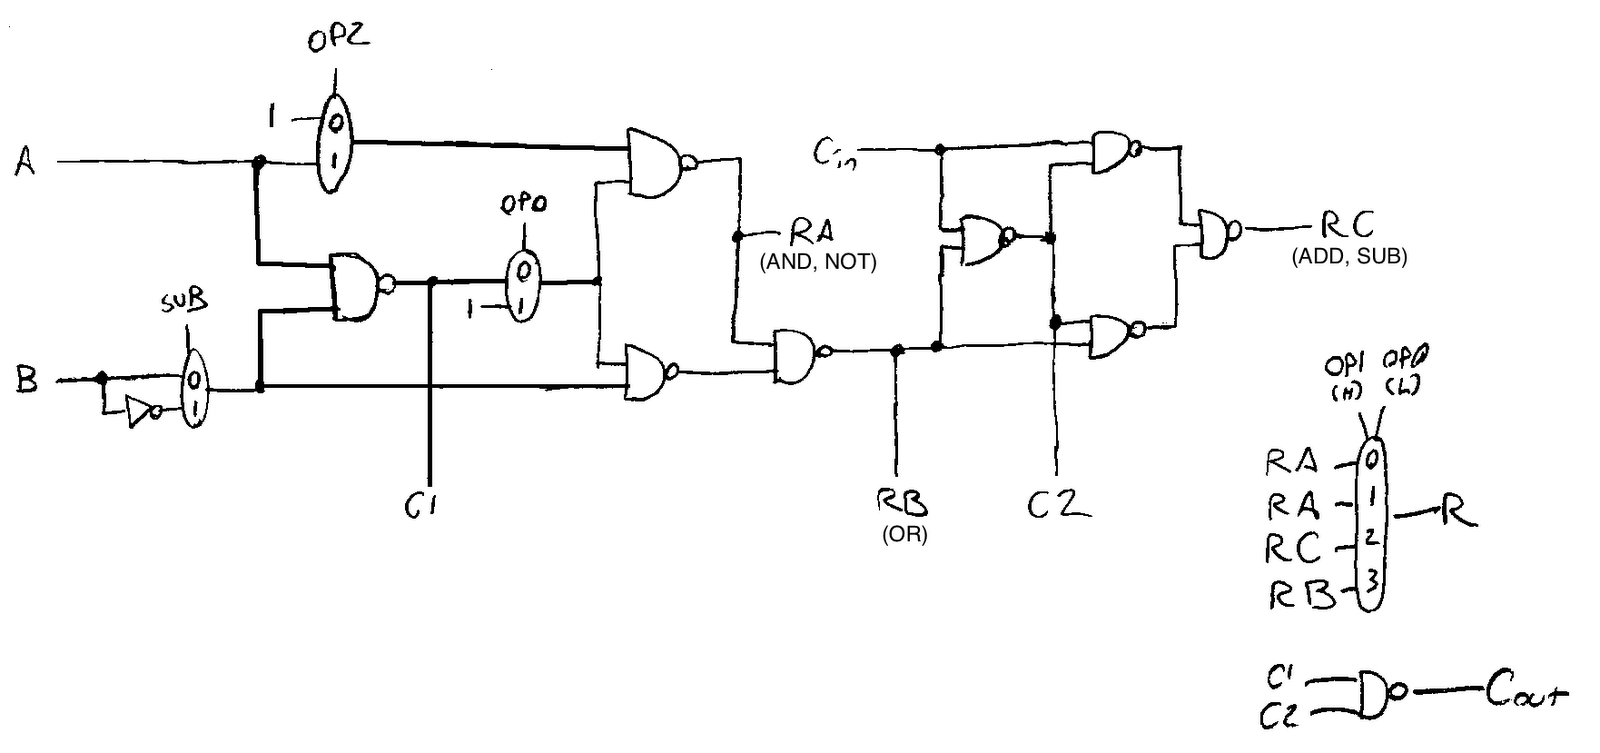 hight resolution of the circuit for a typical bit is best described as a modified full adder these modifications which are necessary to support five operations add sub